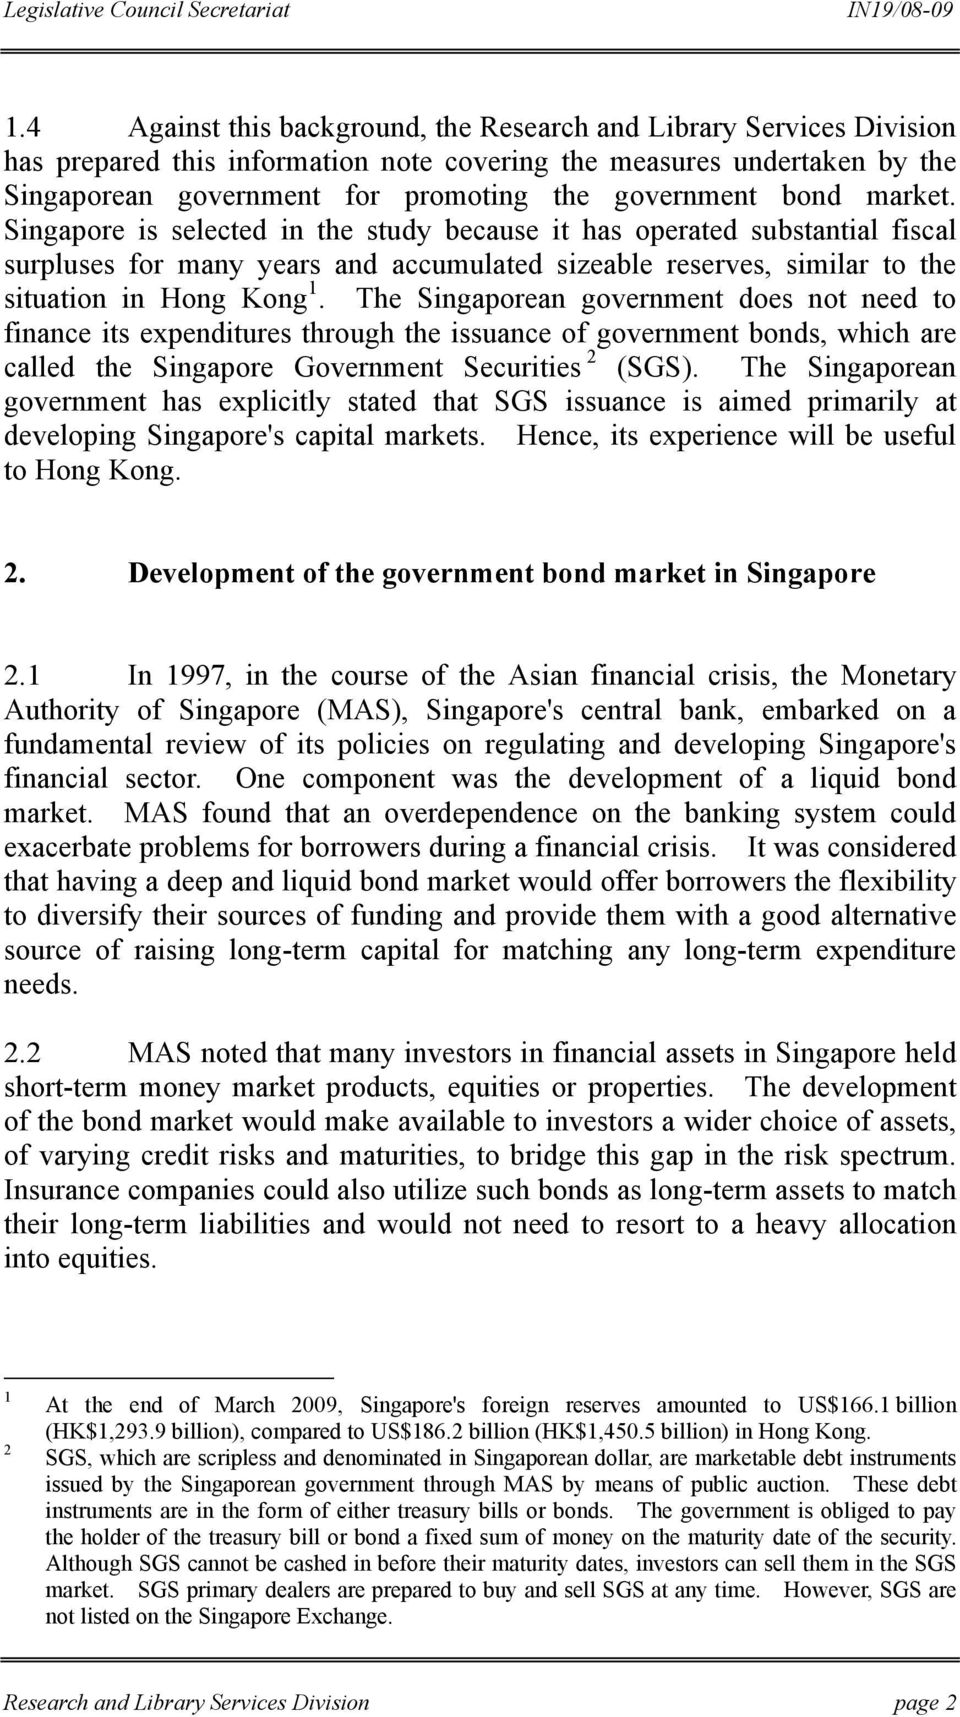 The Singaporean government does not need to finance its expenditures through the issuance of government bonds, which are called the Singapore Government Securities 2 (SGS).